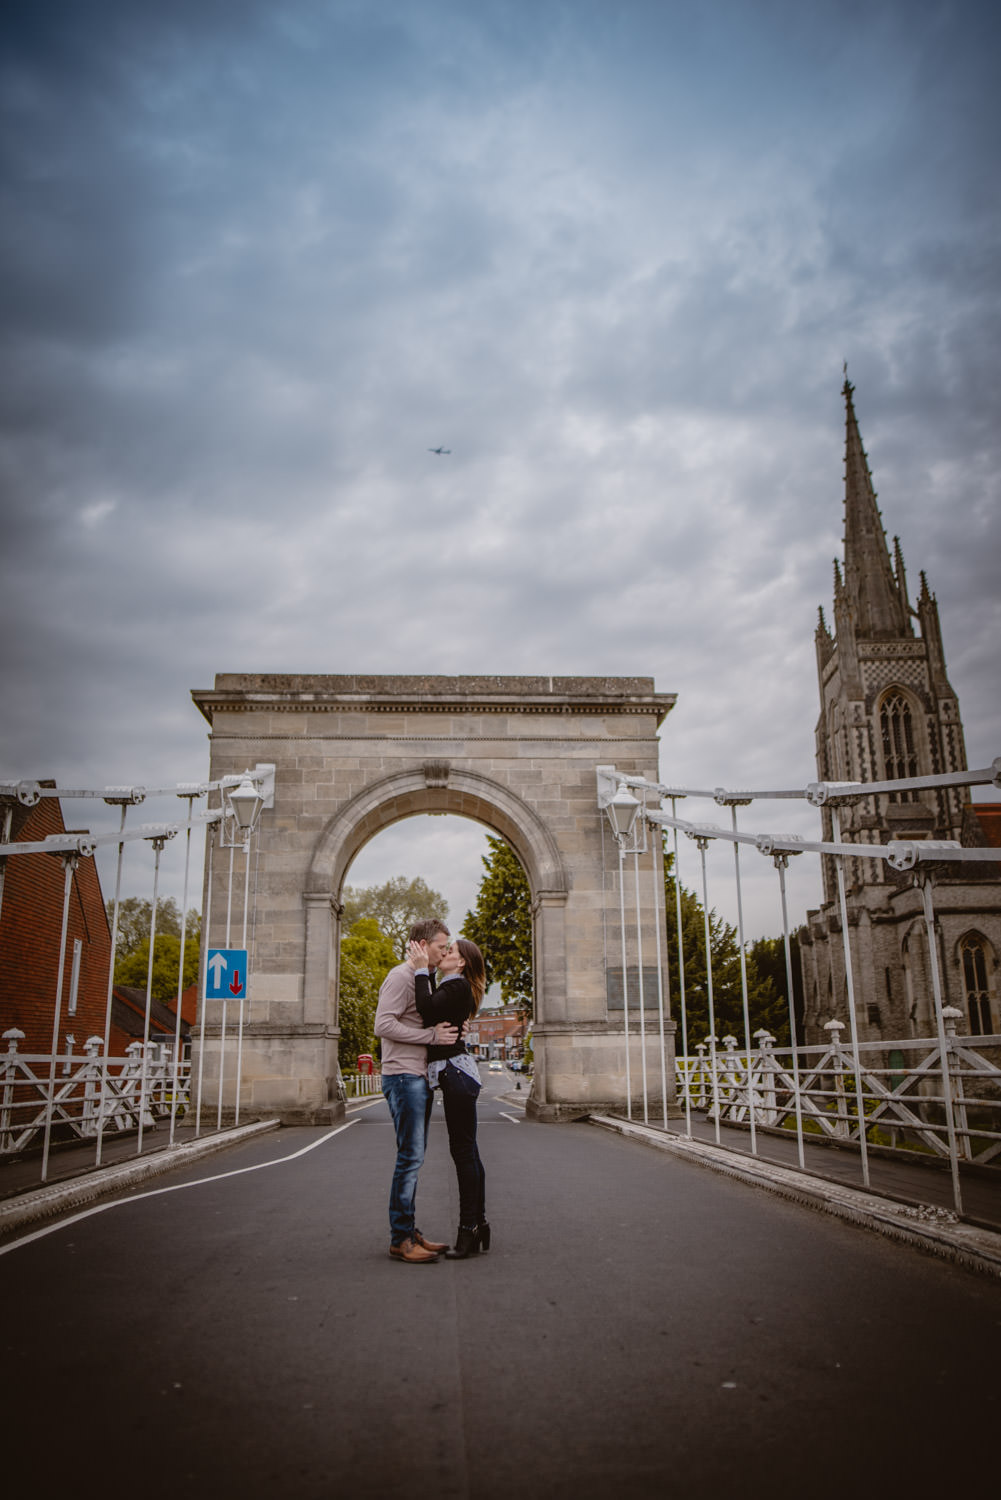 Marlow Bridge Engagement photos